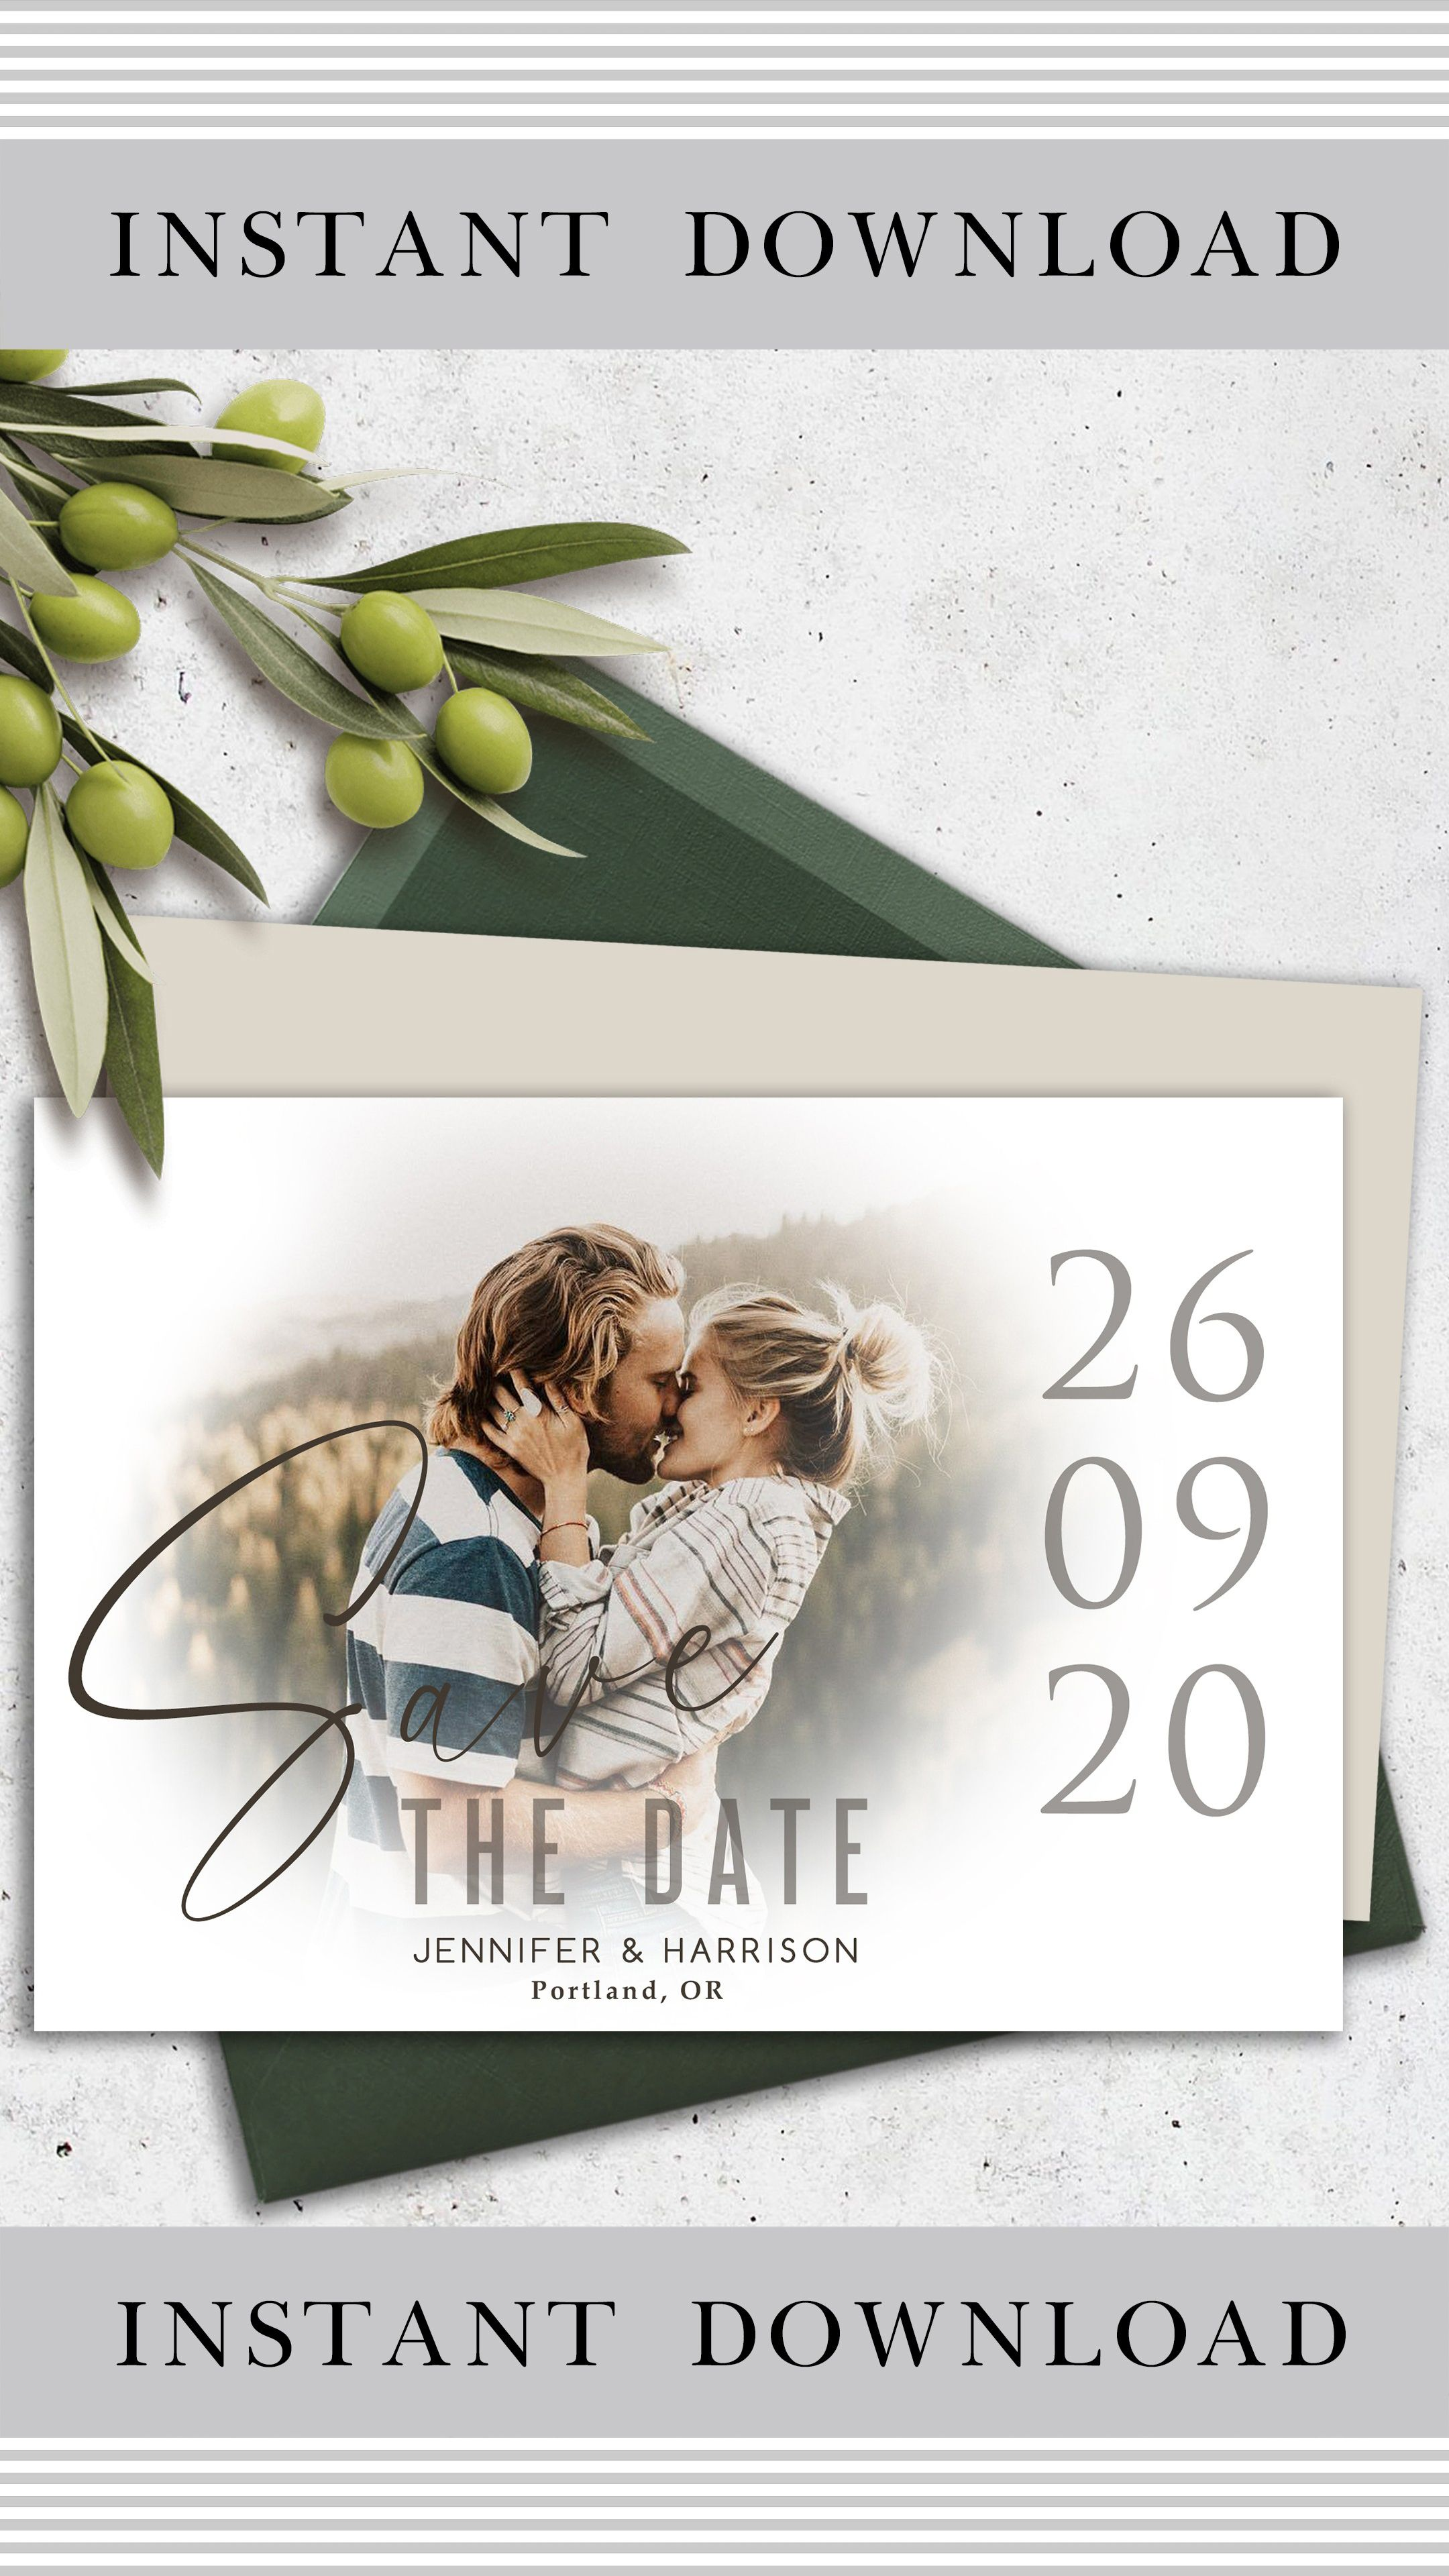 Instant download. Wedding announcement card with a photo Personalized editable cards save your date Save the date template